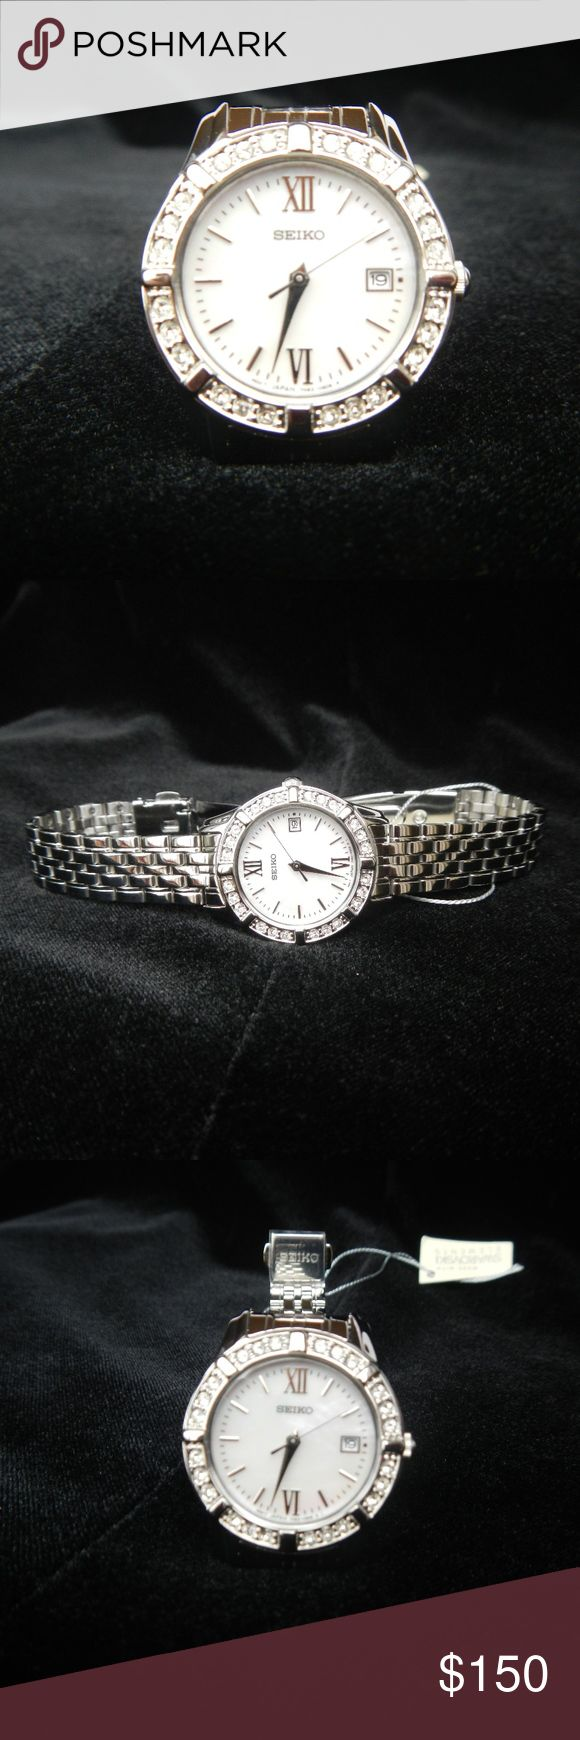 Seiko Ladies Watch - NWT Seiko Ladies Watch - NWT. The watch is polished stainless steel with a mother of pearl face surrounded by 24 sparkling Swarovski crystals. It is a standard size ladies watch, but it was just too big for my wrist. Seiko Accessories Watches